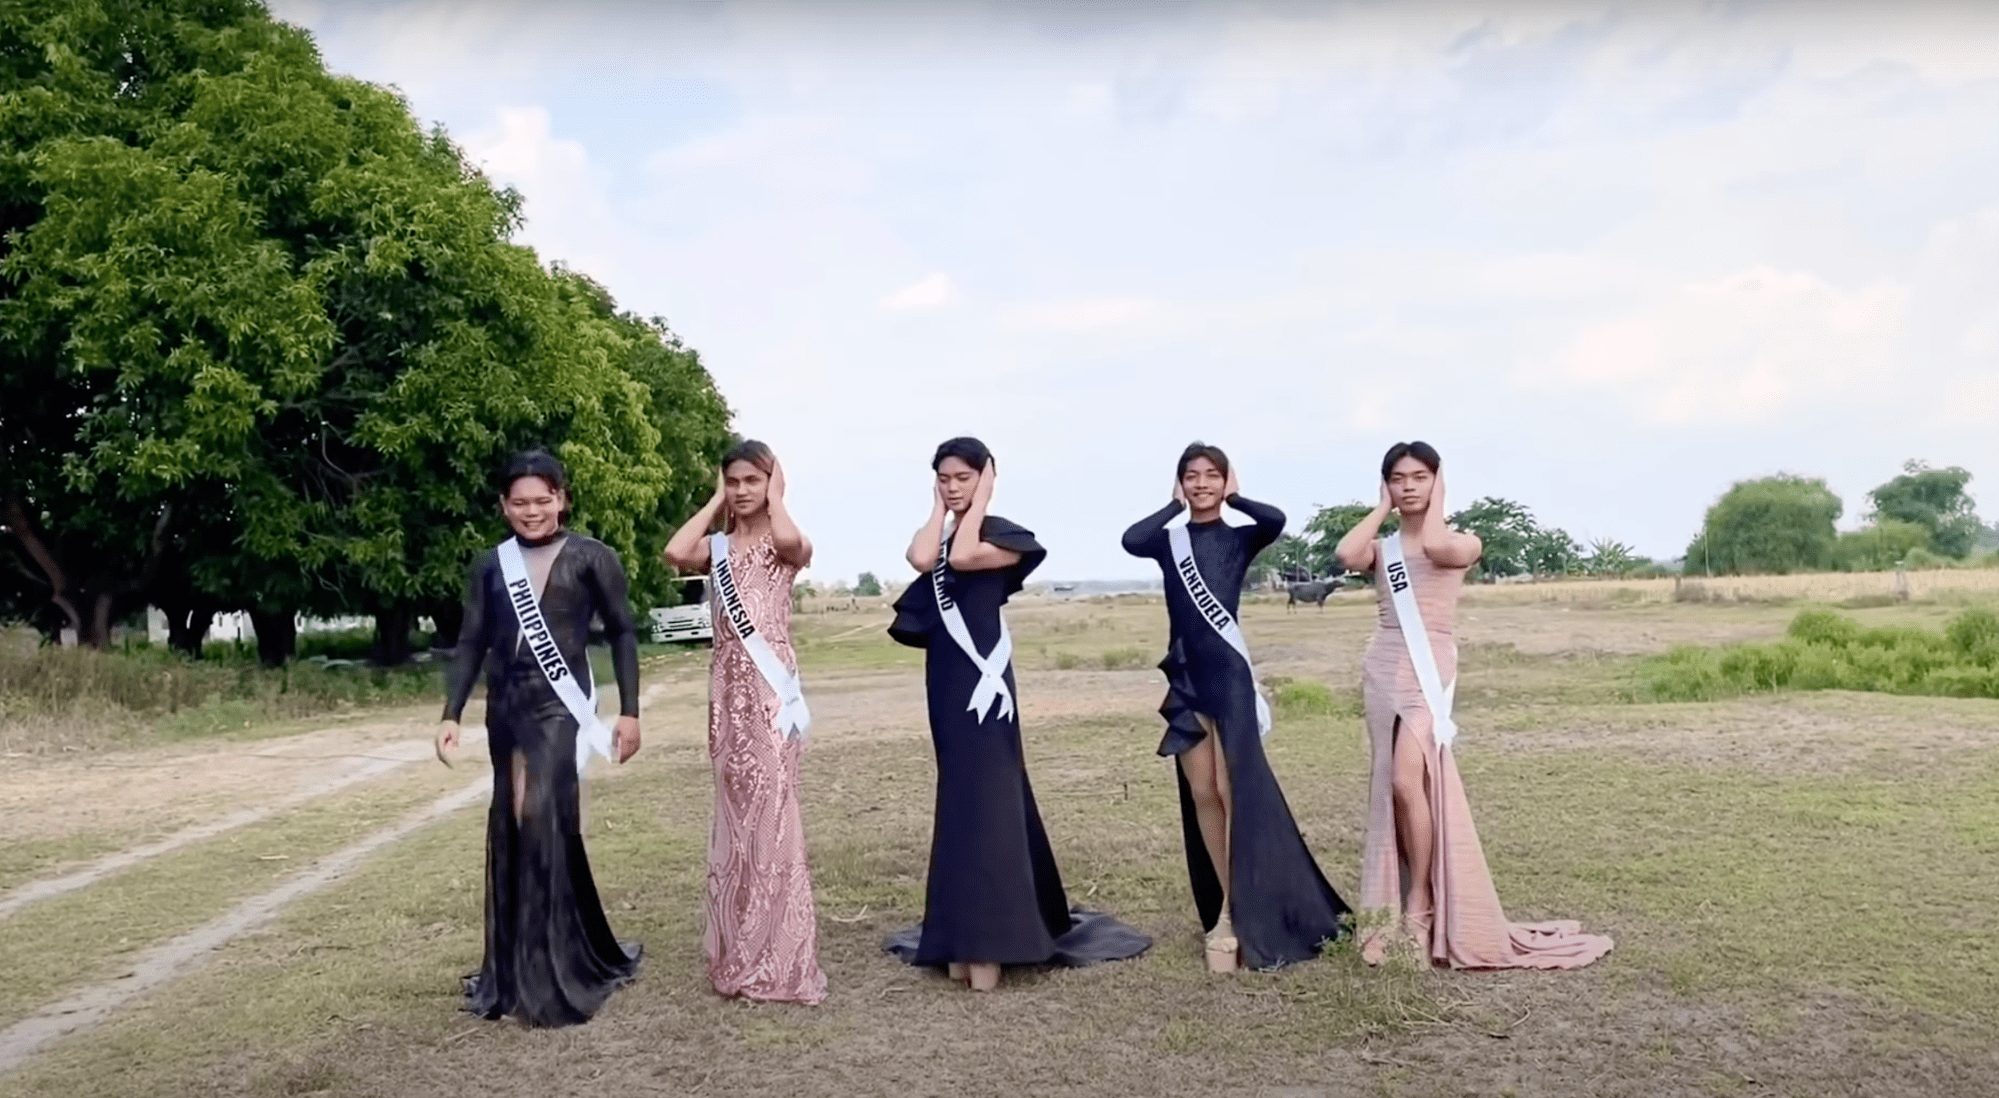 5 Filipinos in evening gowns, 4 covering their ears